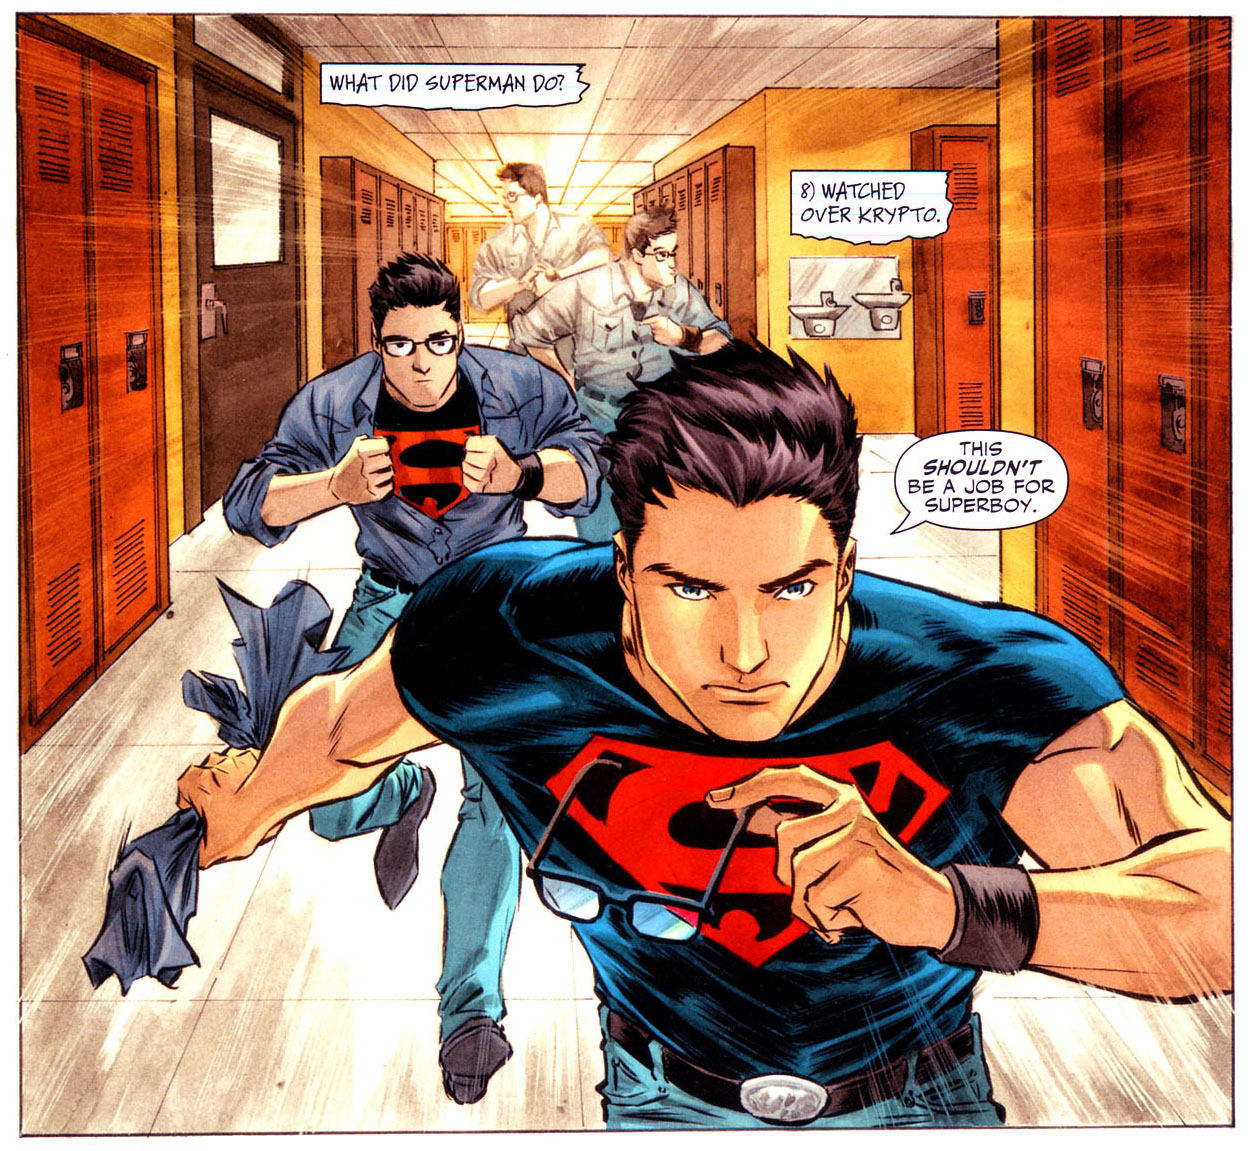 A much better version of Superboy than any seen in the New 52.